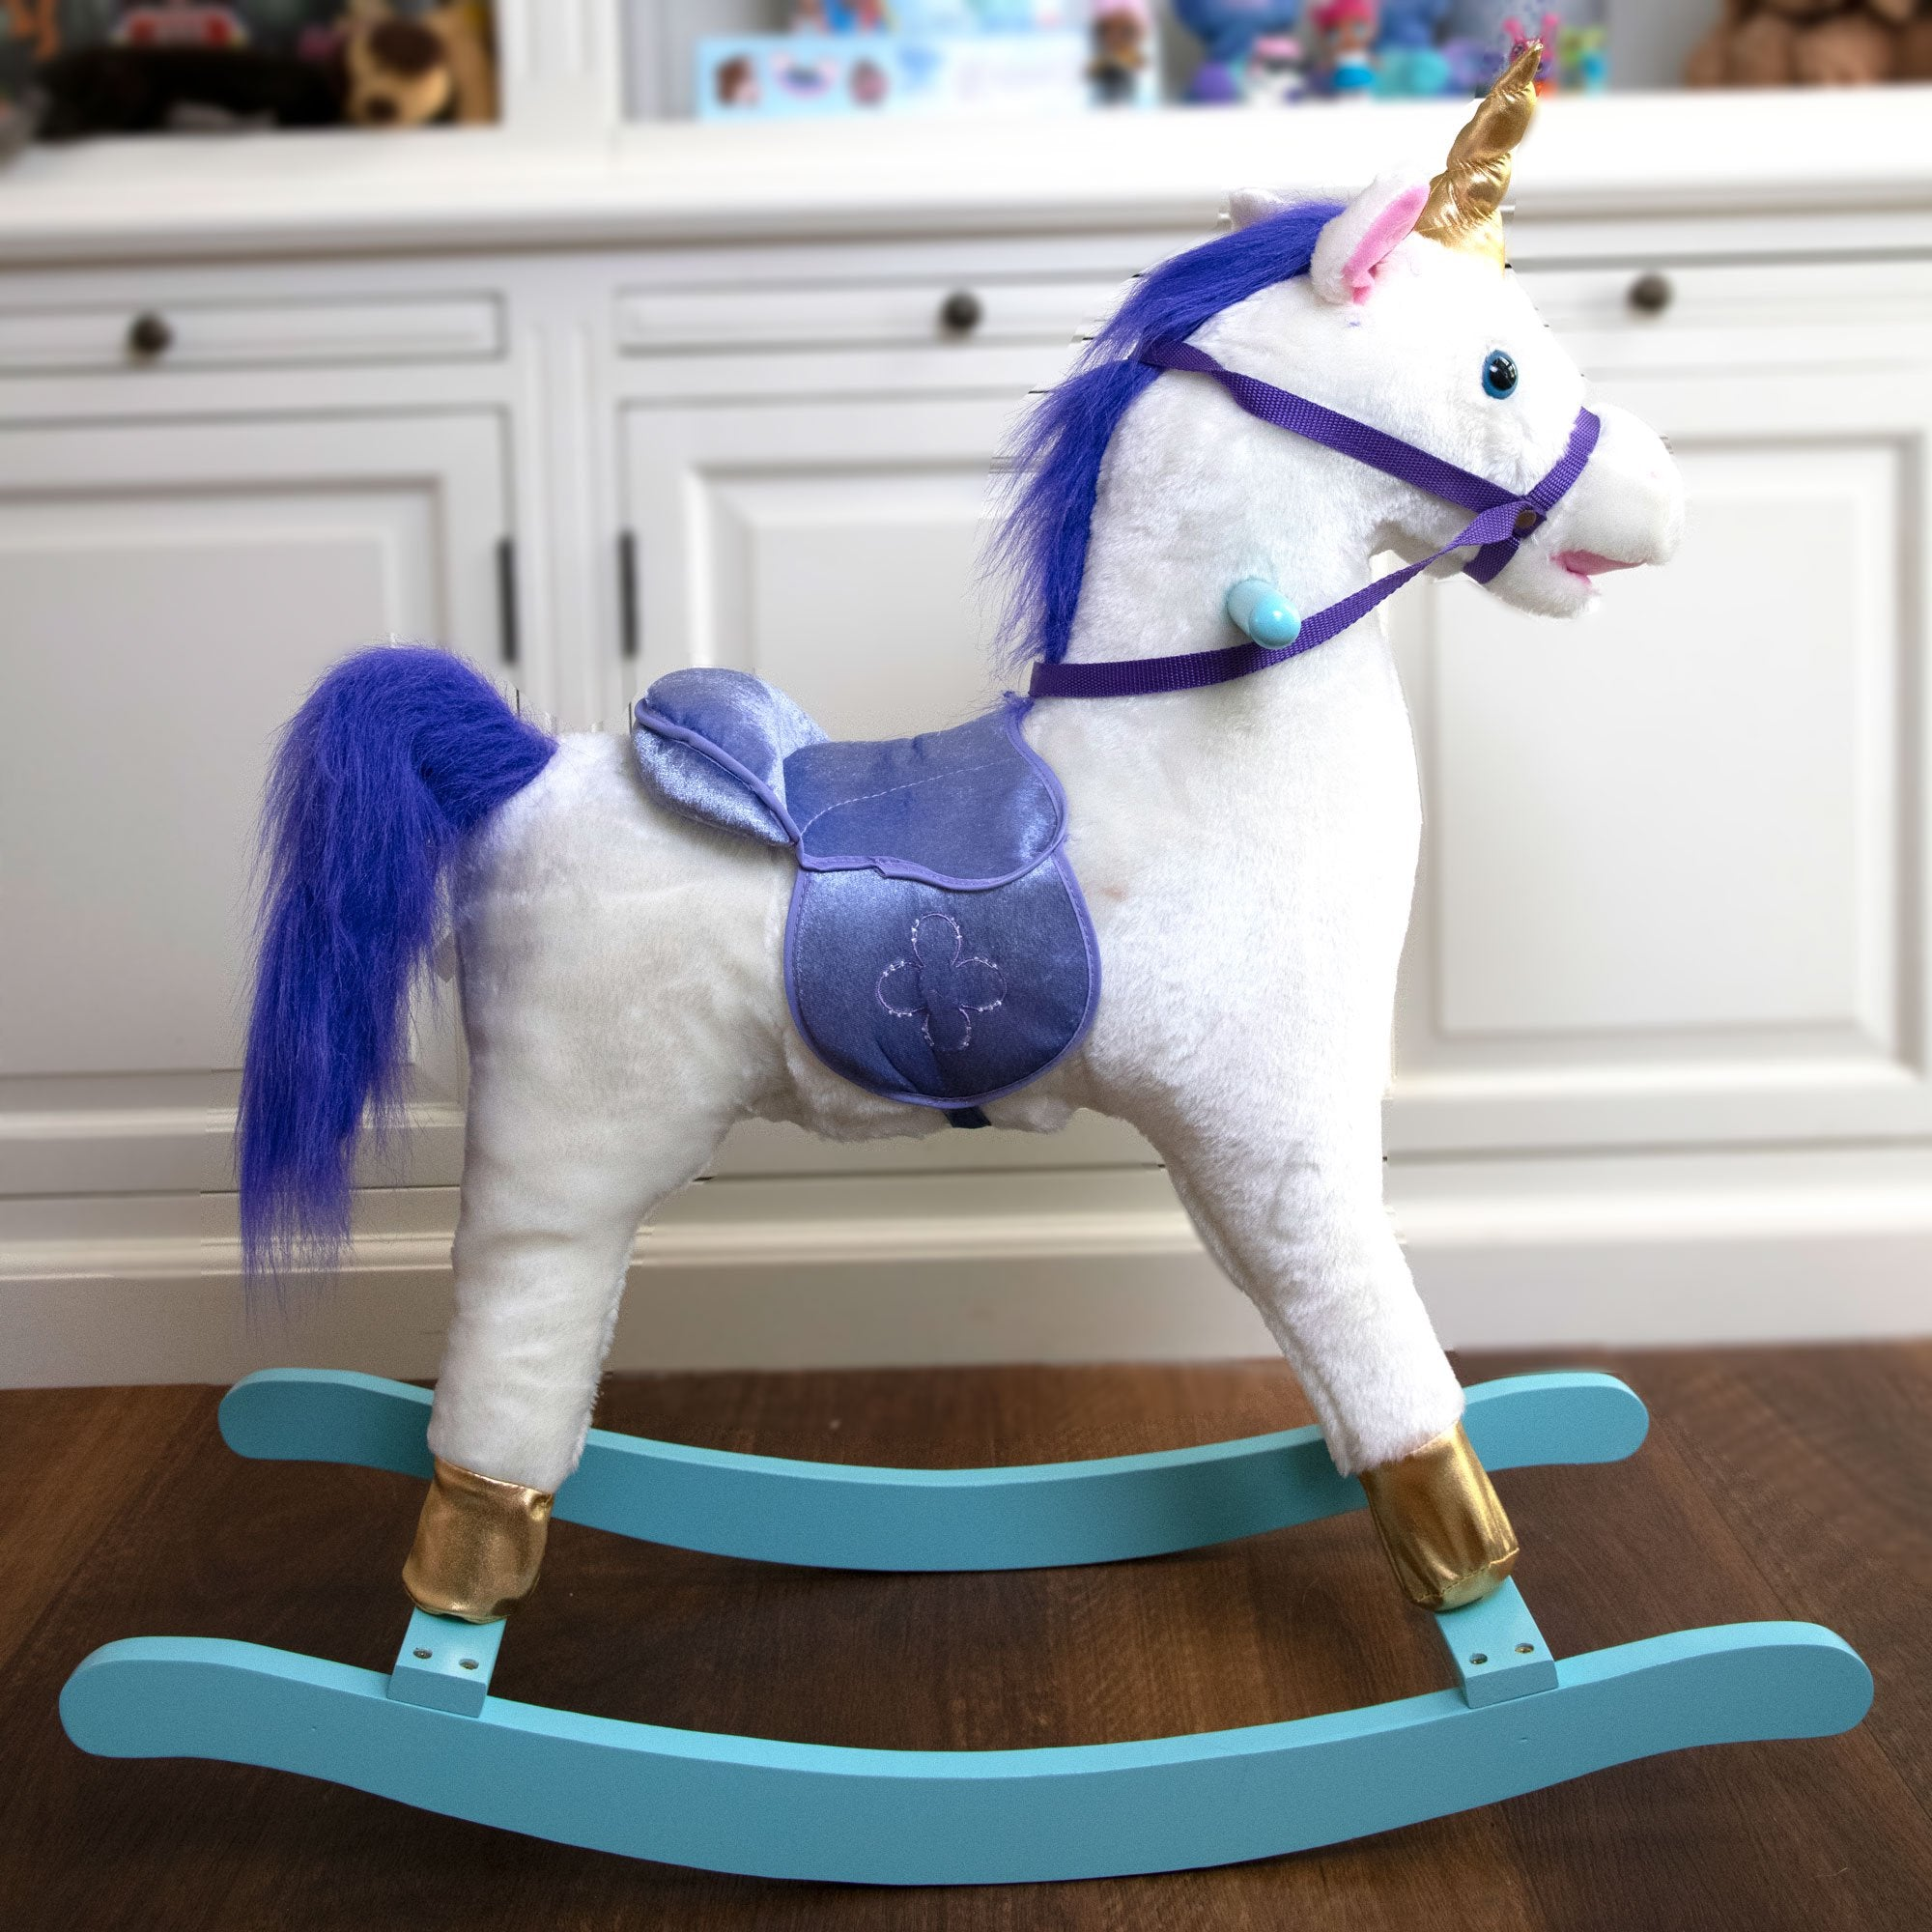 Buy Lilac Rocking Horse Unicorn Ride On With Sound And Movement